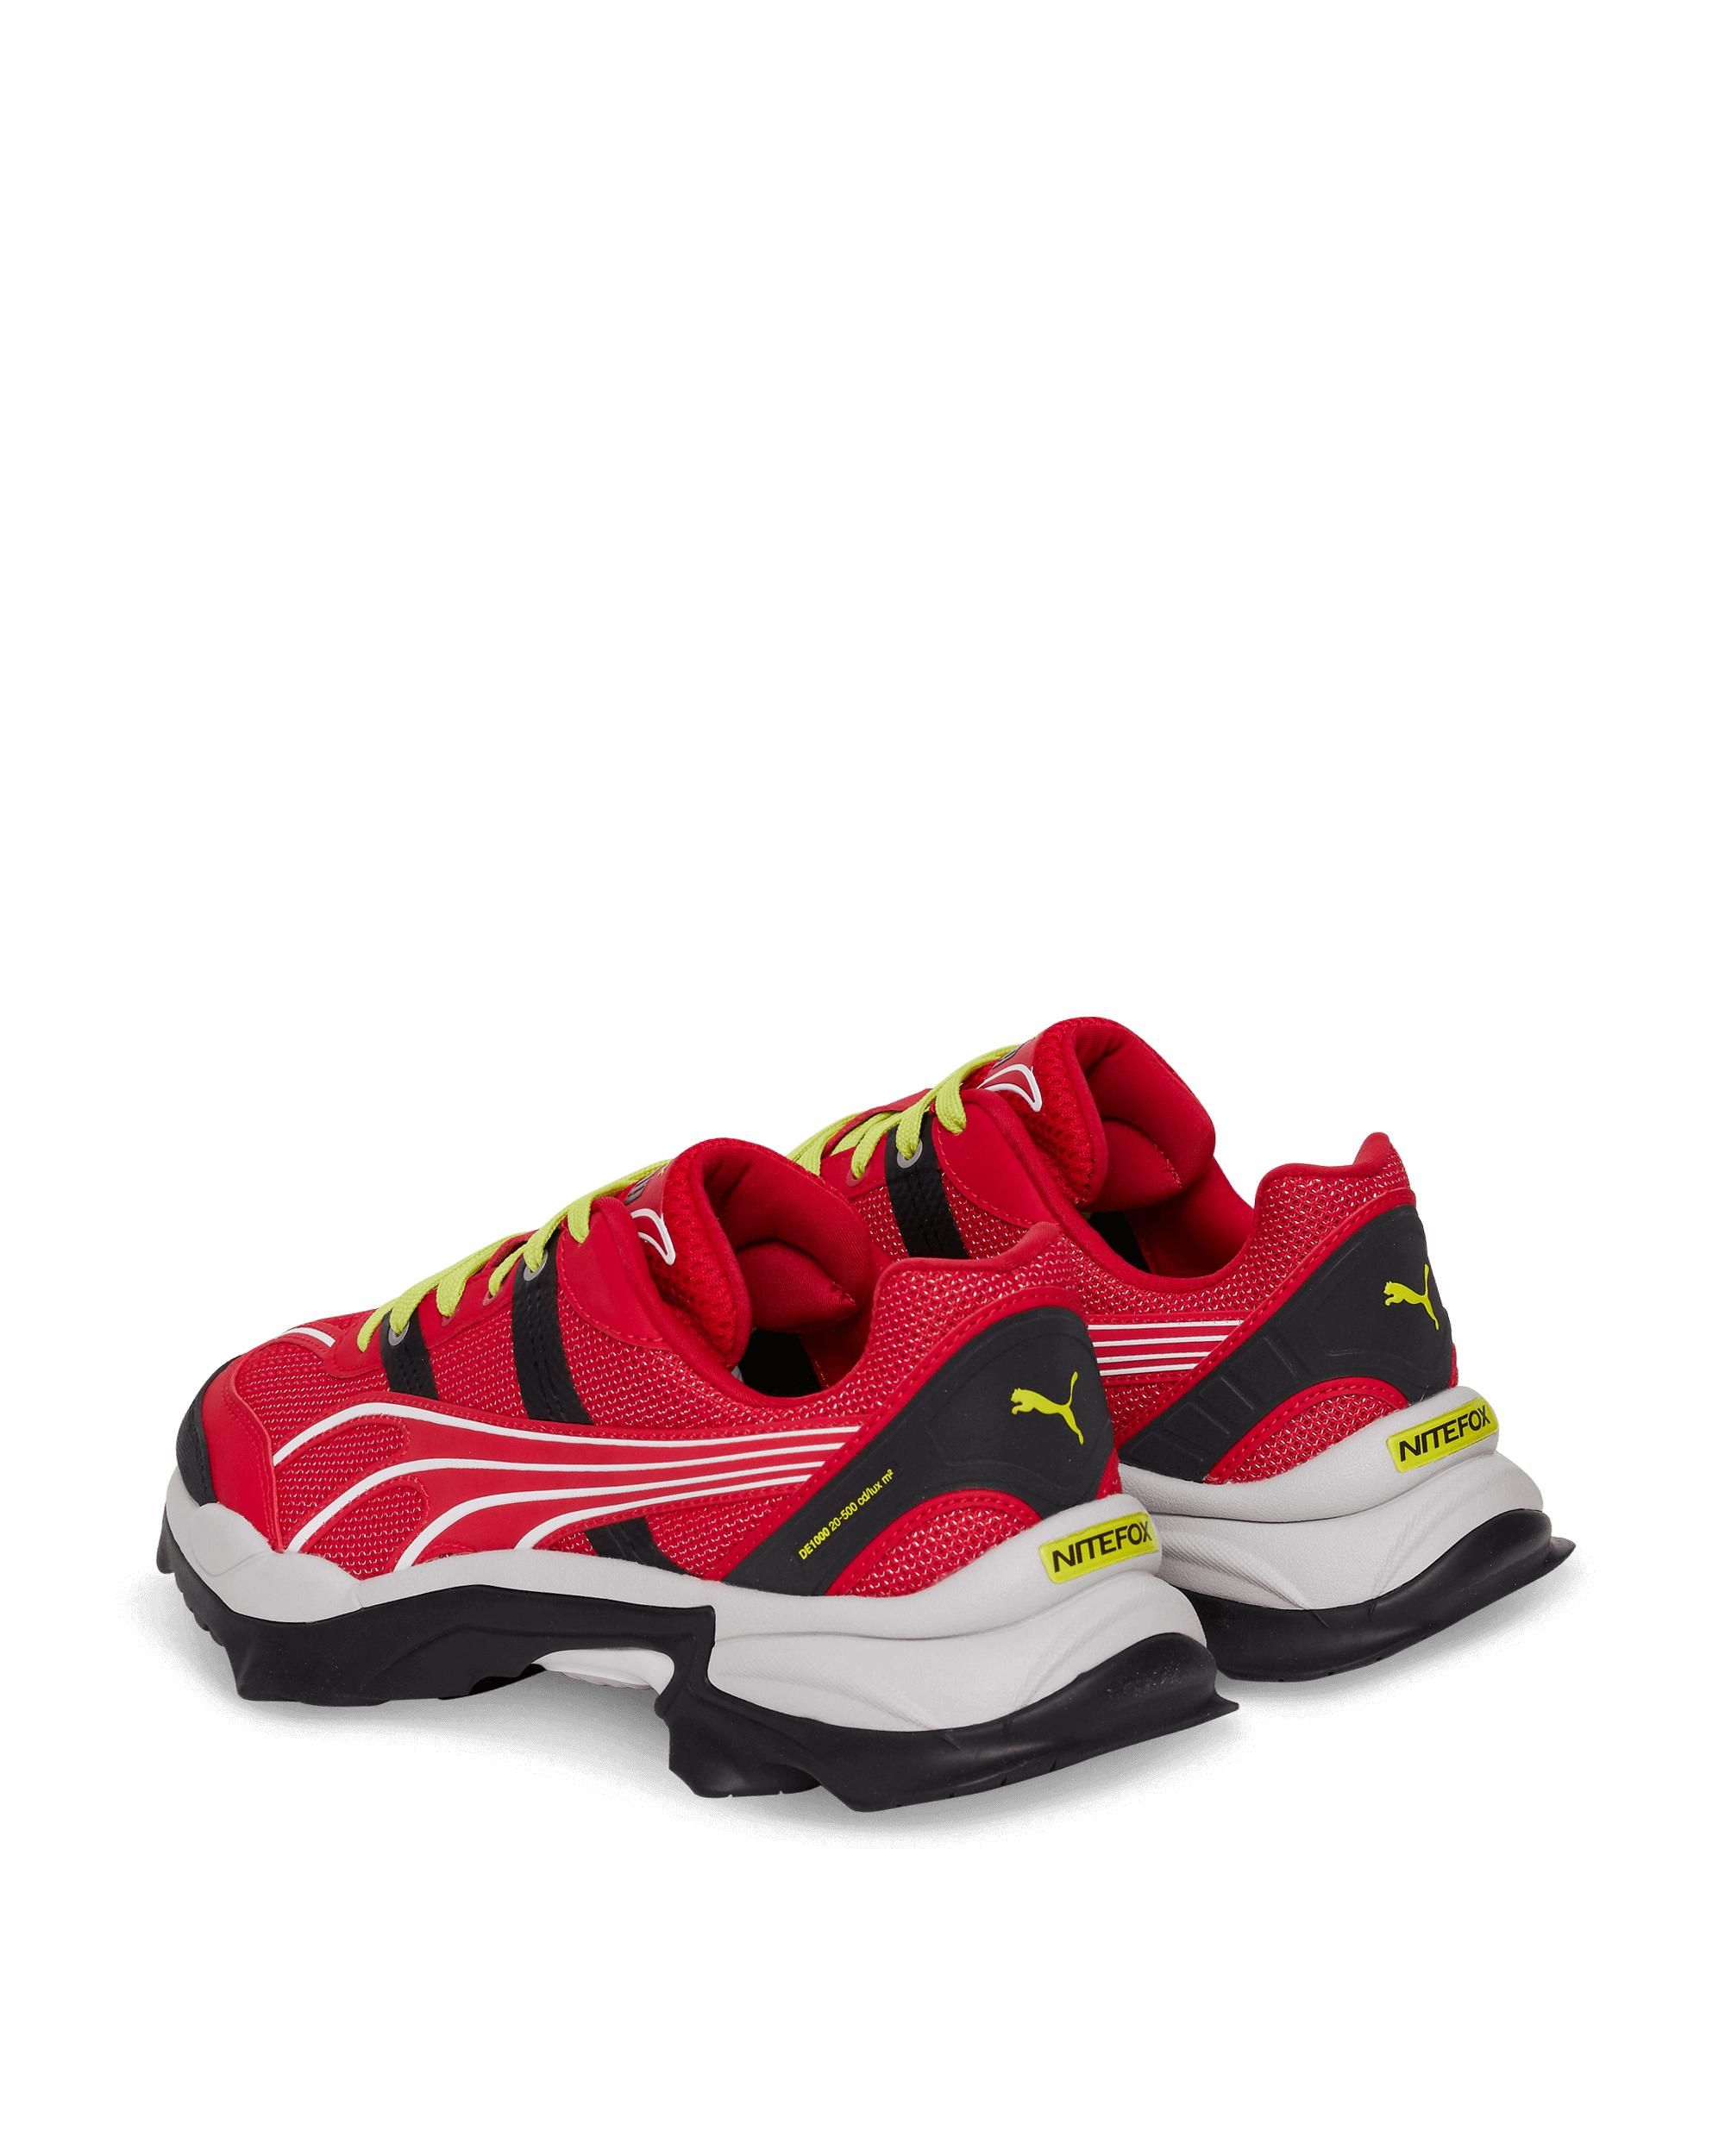 PUMA Rubber Nitefox Highway Trainers in